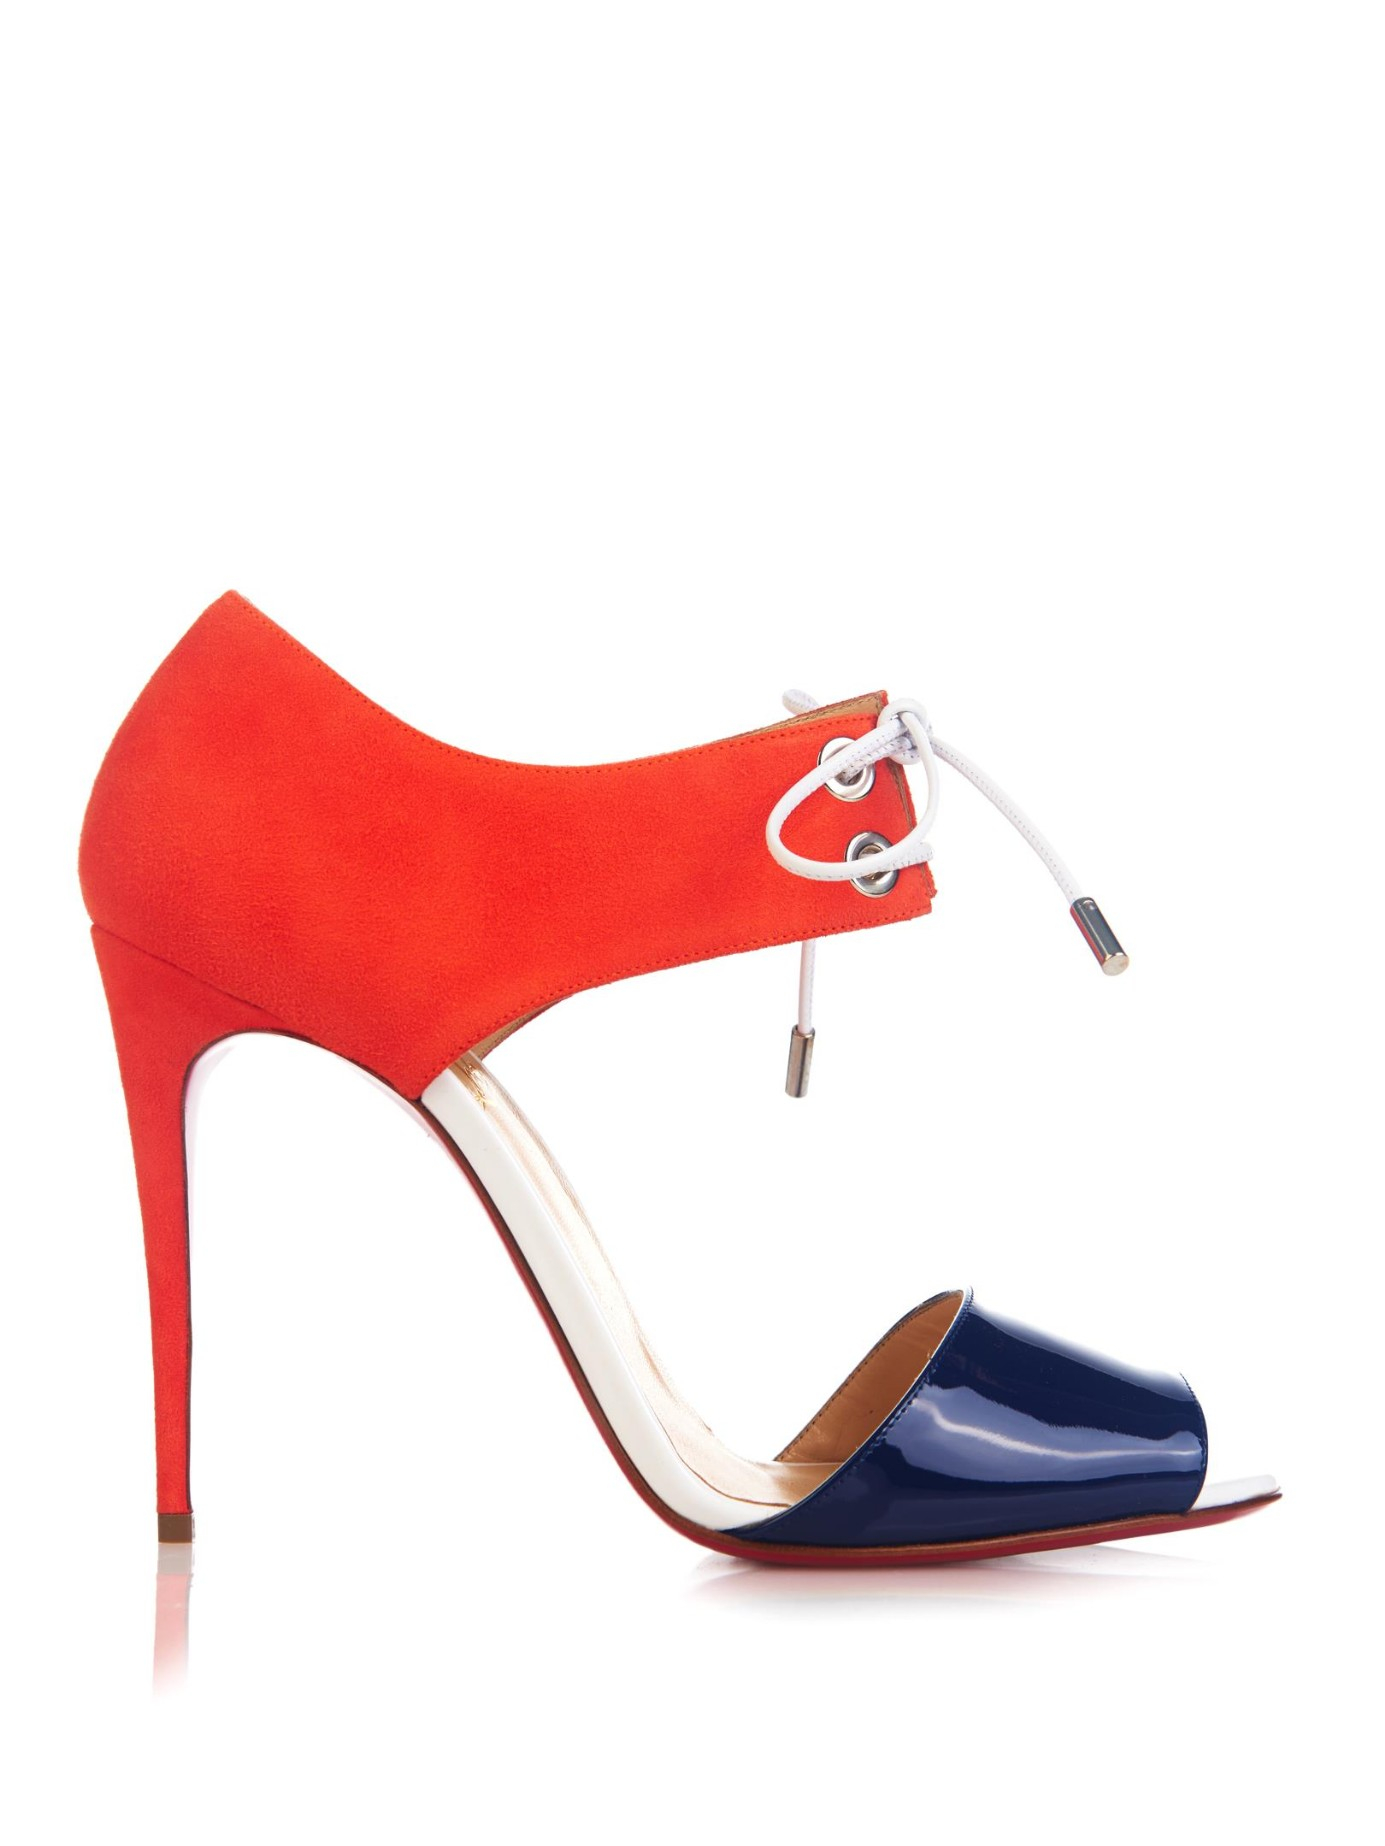 1e8a7a021269f7 Lyst - Christian Louboutin Mayerling Patent Leather and Suede ...